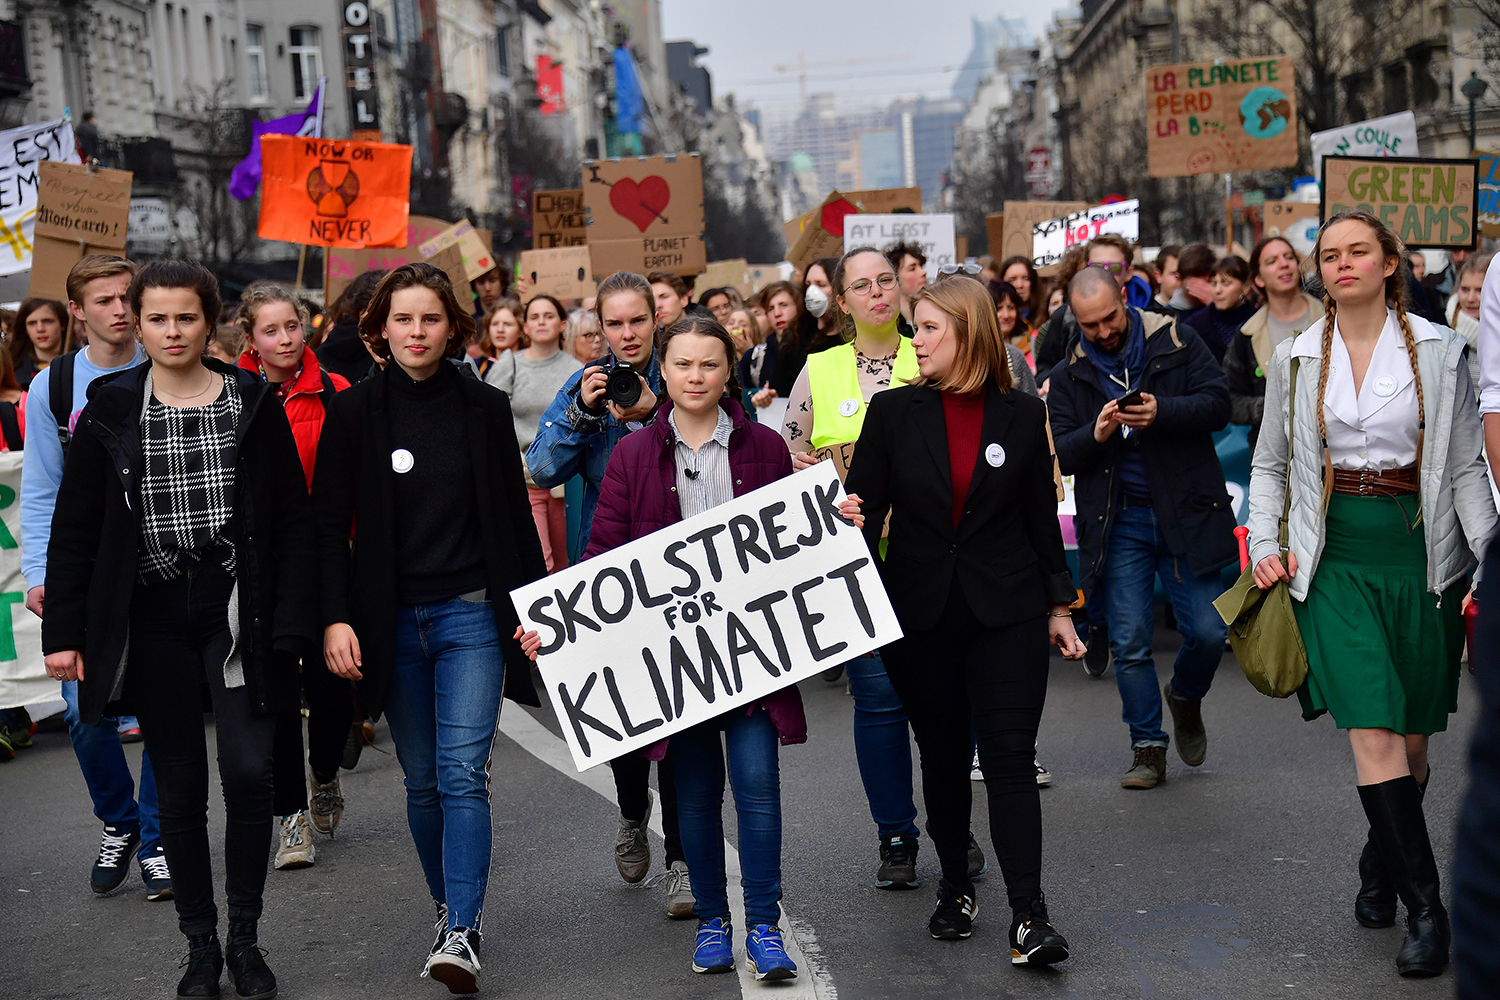 BELGIUM | Greta Thunberg attends the Youth for Climate march in Brussels on Feb. 21.  EMMANUEL DUNAND/AFP via Getty Images